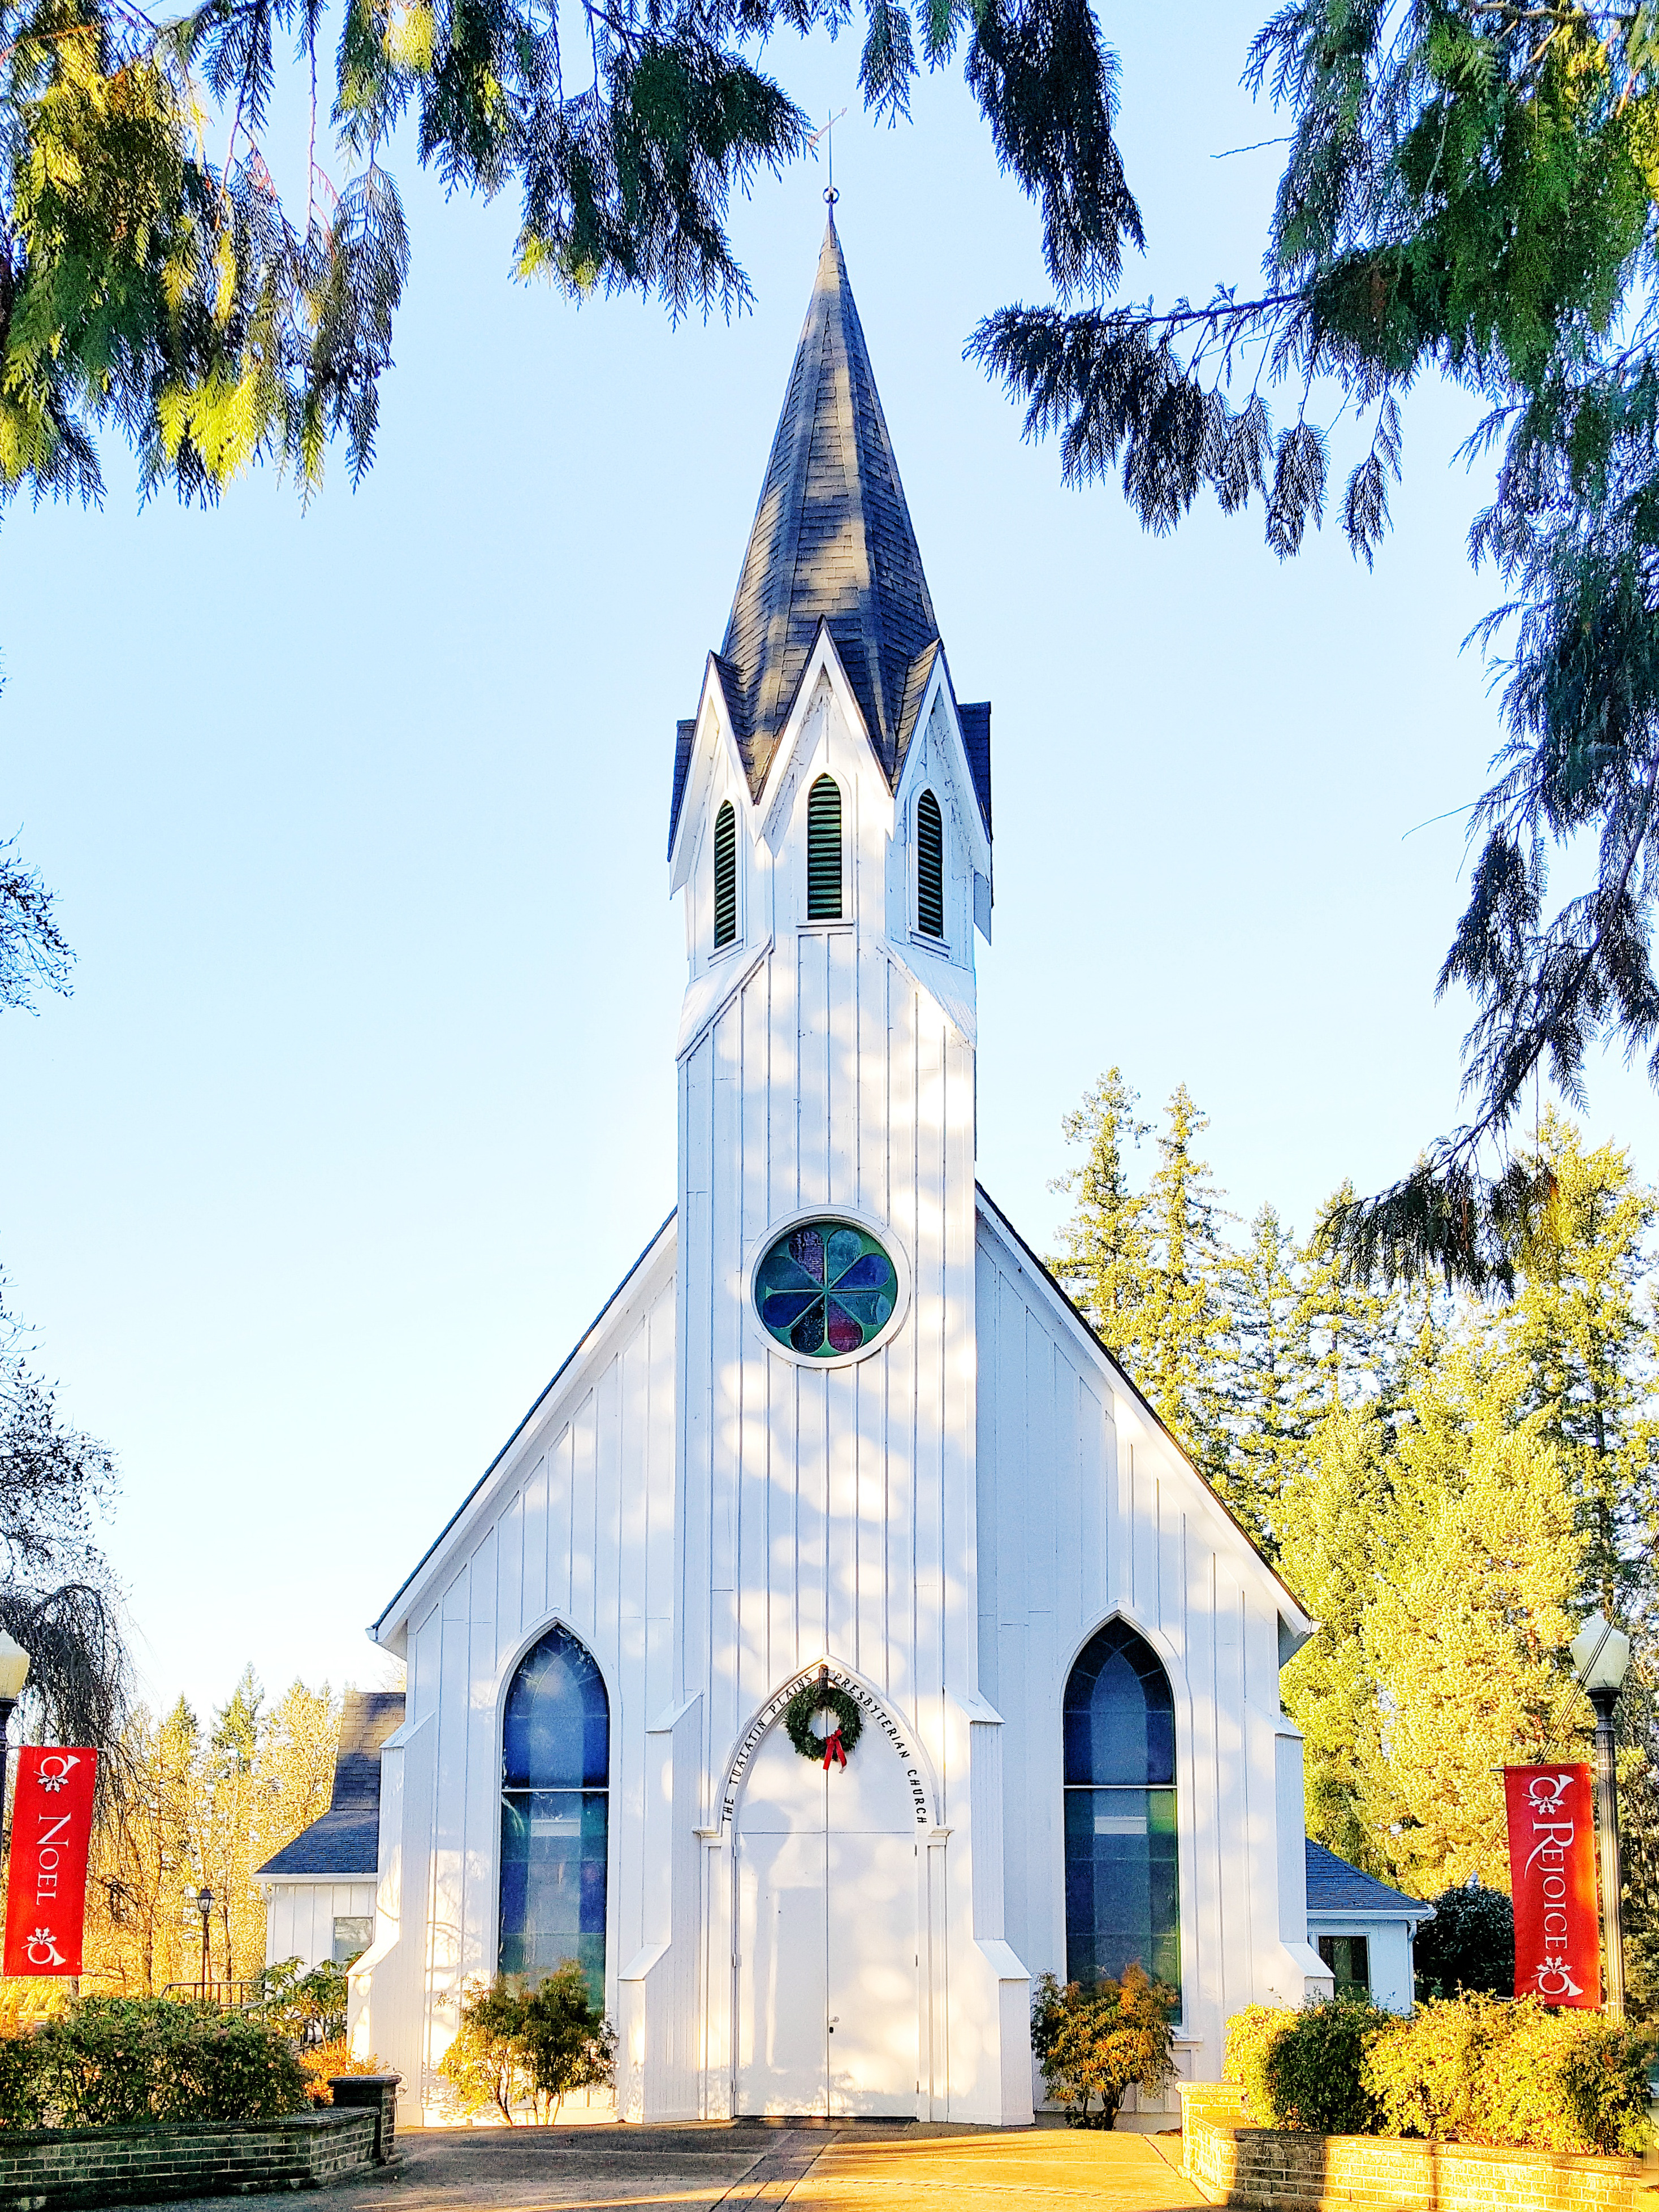 Oregon Wine Country Church - 6 Things I Learned This Winter